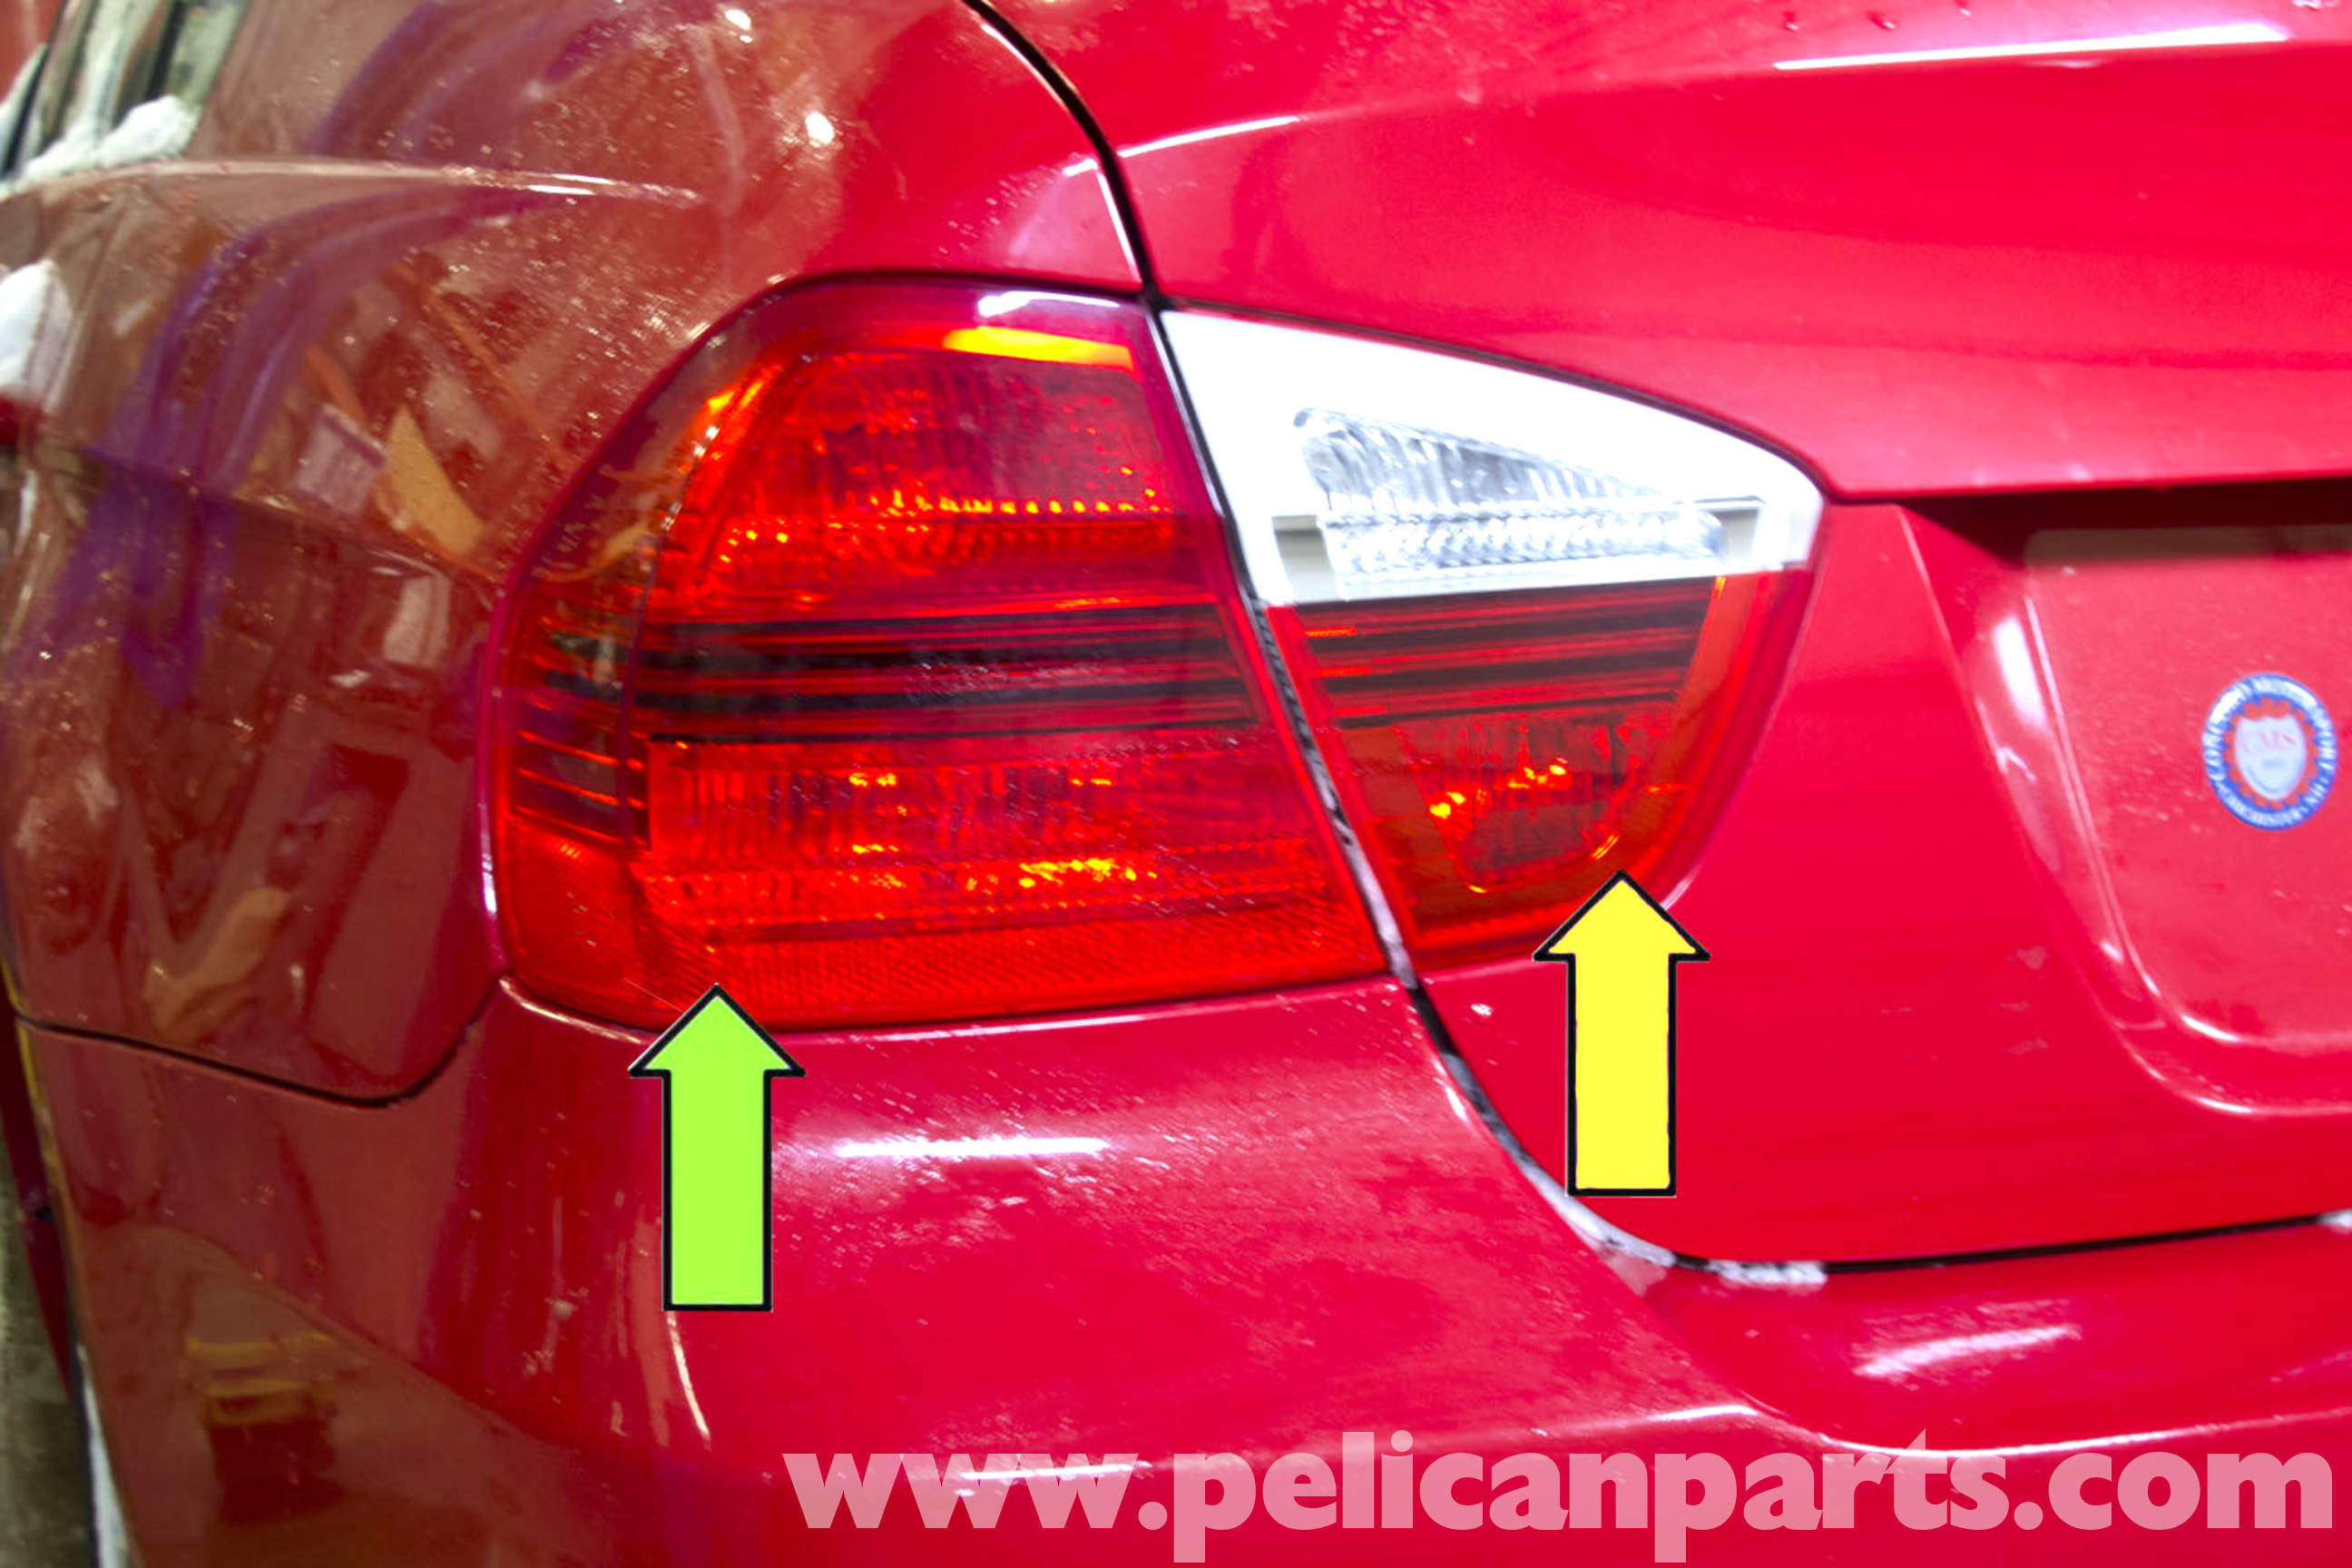 Bmw e90 tail light replacement e91 e92 e93 pelican parts diy large image extra large image aloadofball Image collections